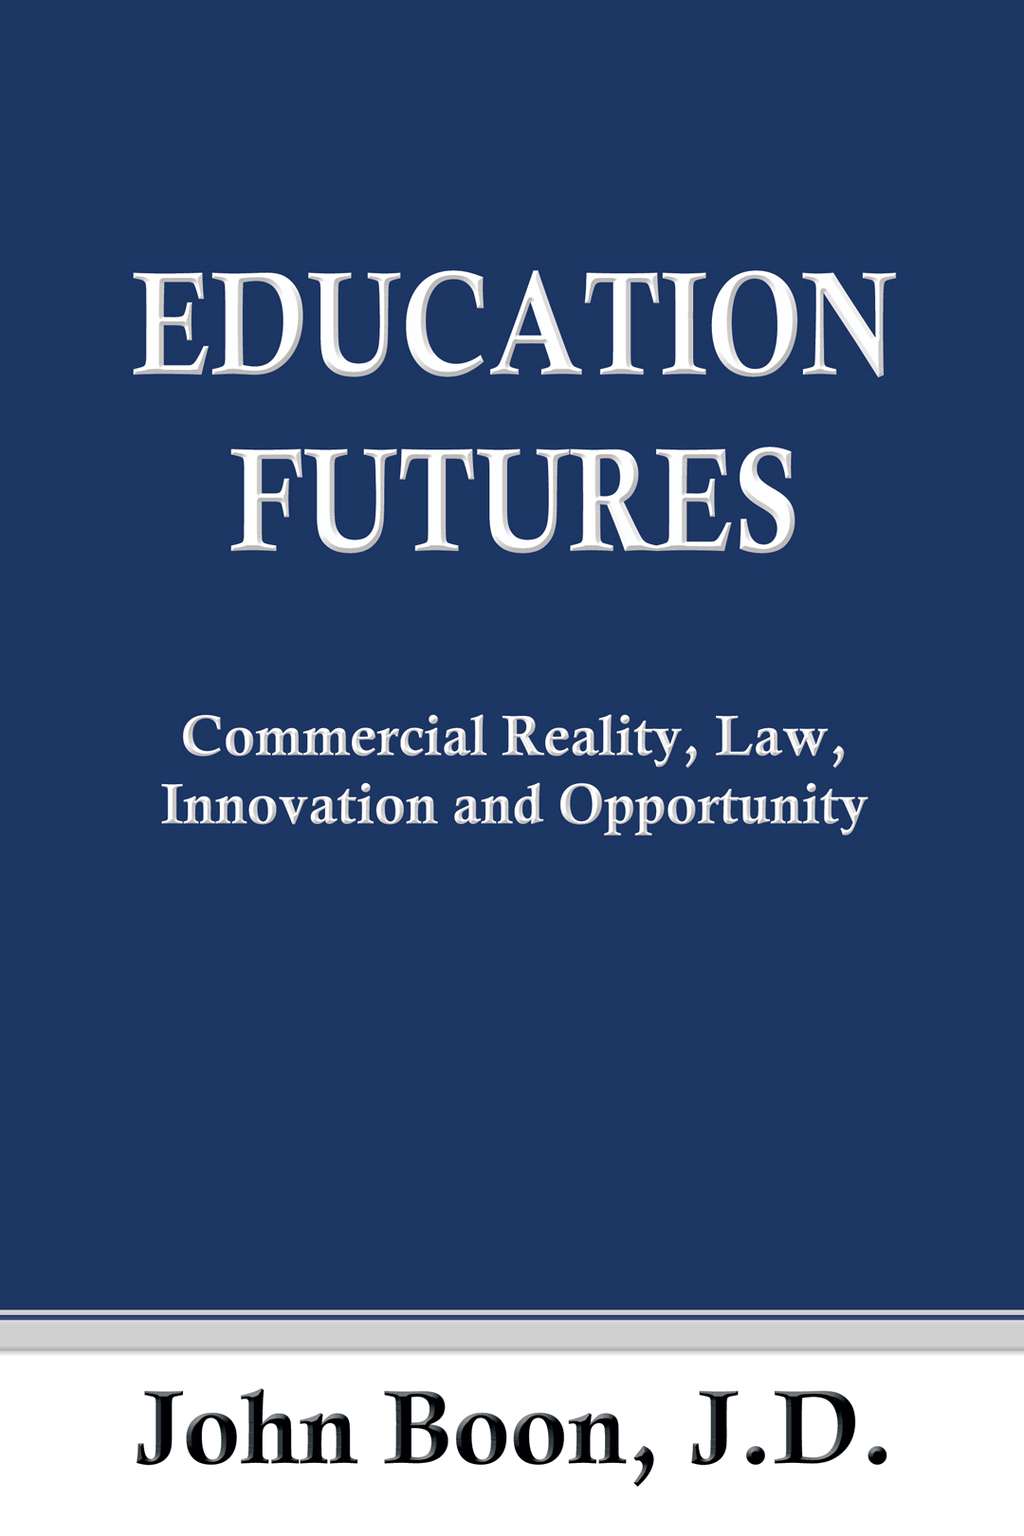 Education Futures: Commercial Reality, Law, Innovation and Opportunity